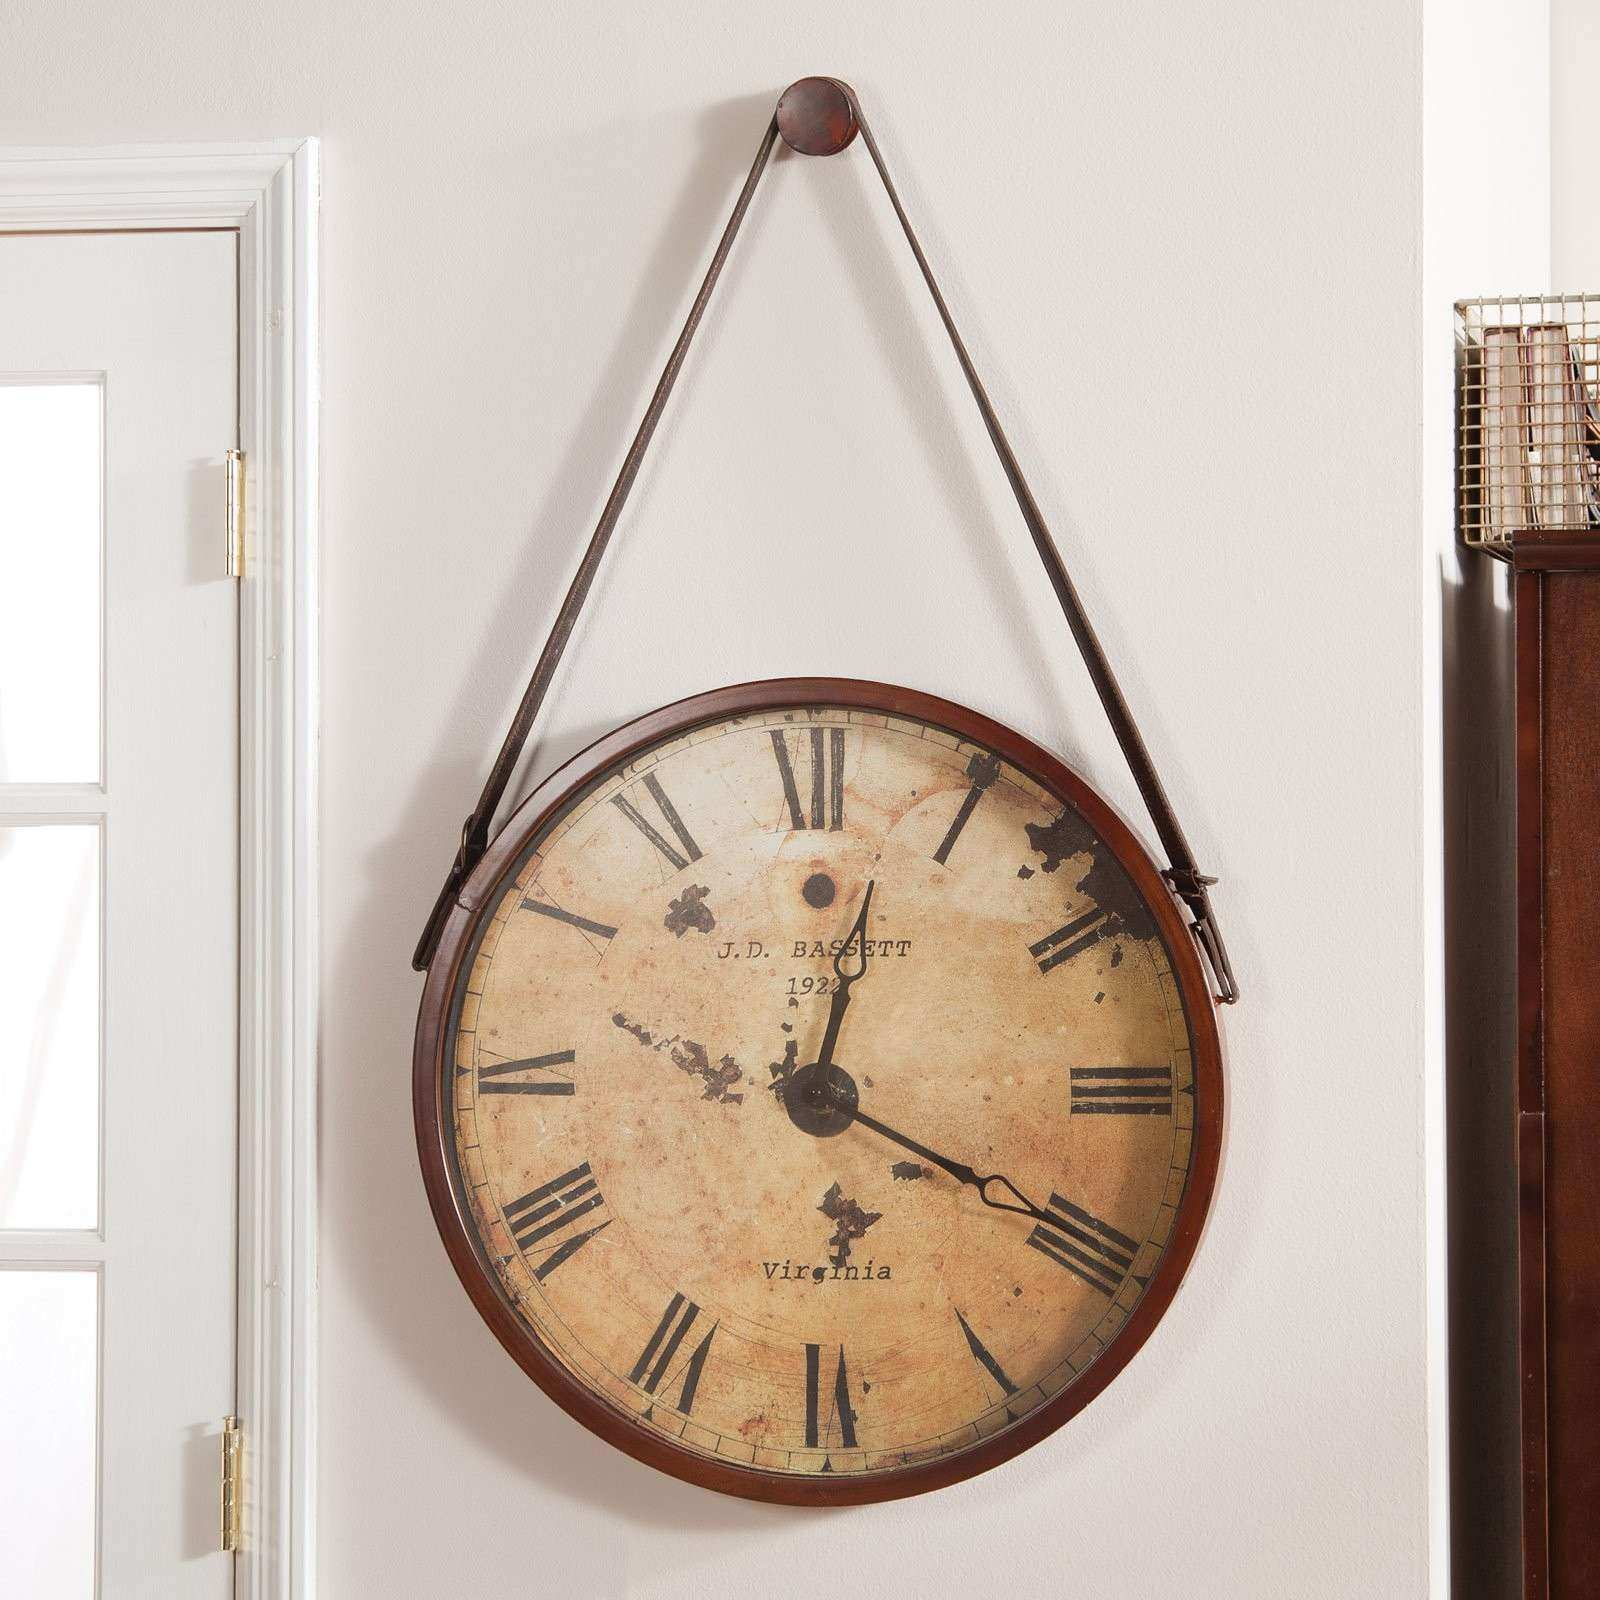 Hanging Decorative 24 in Wall Clock with Faux Leather Strap